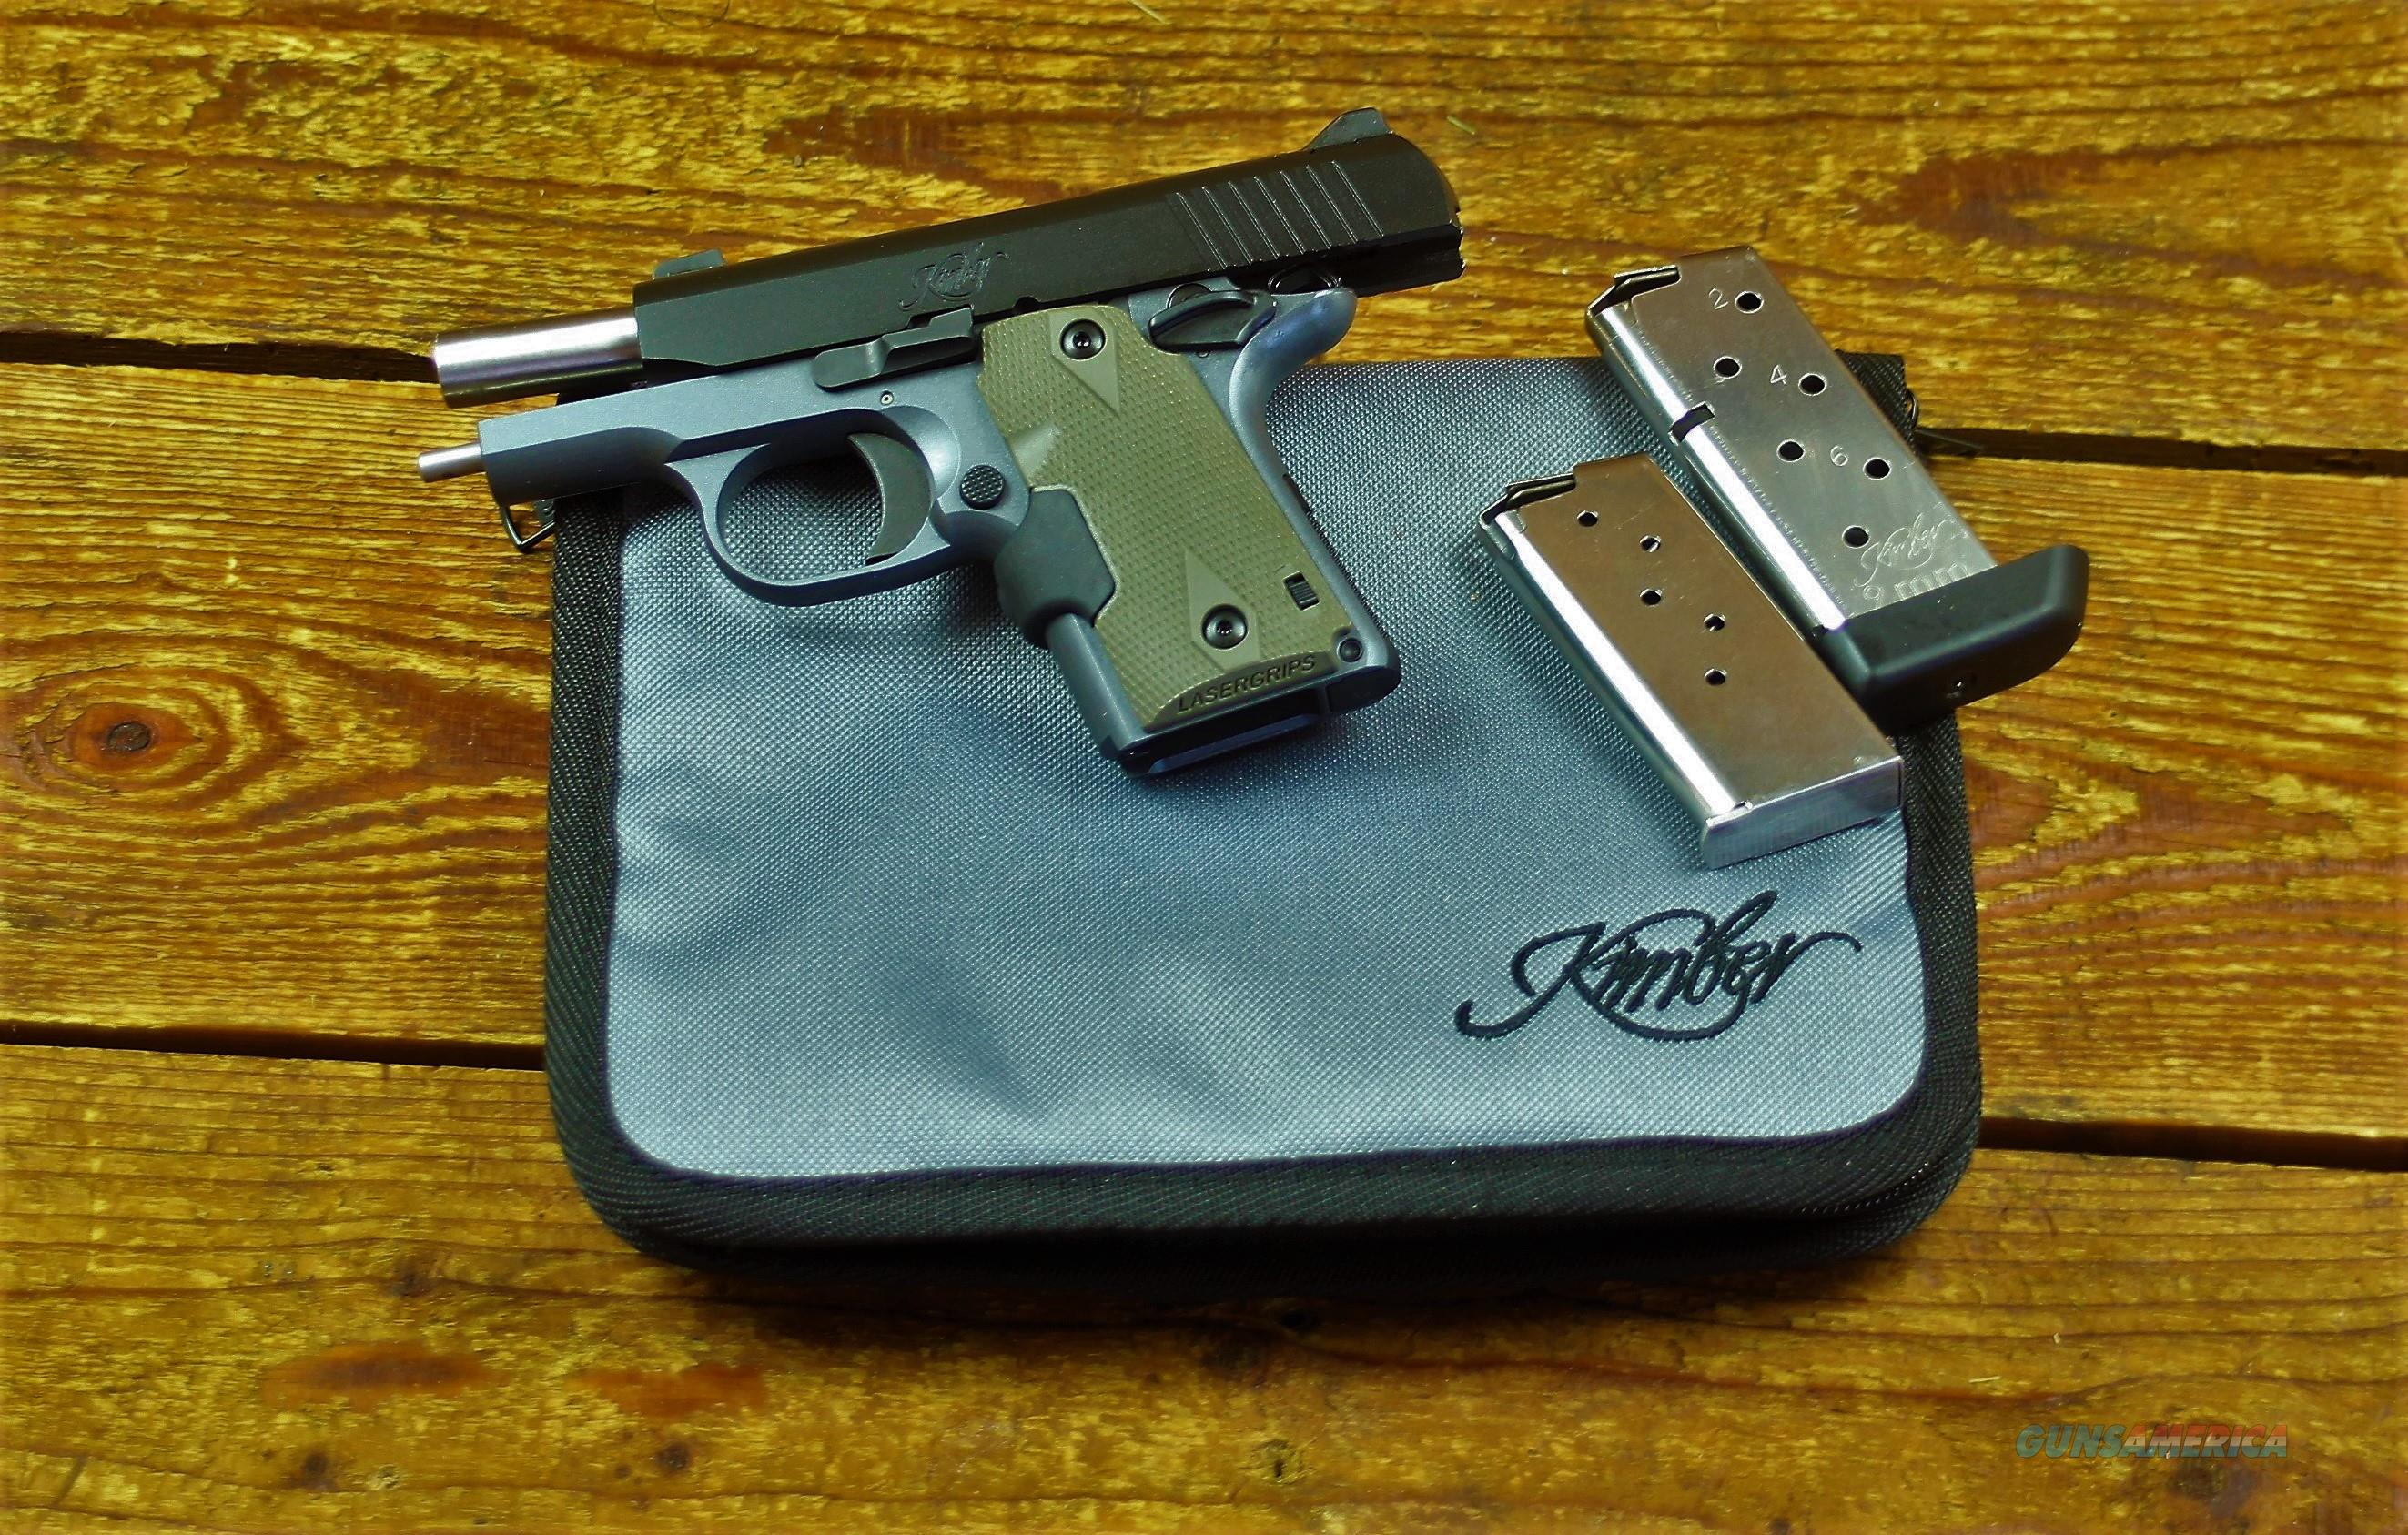 kimber 1911 carry for sale on GunsAmerica  Buy a kimber 1911